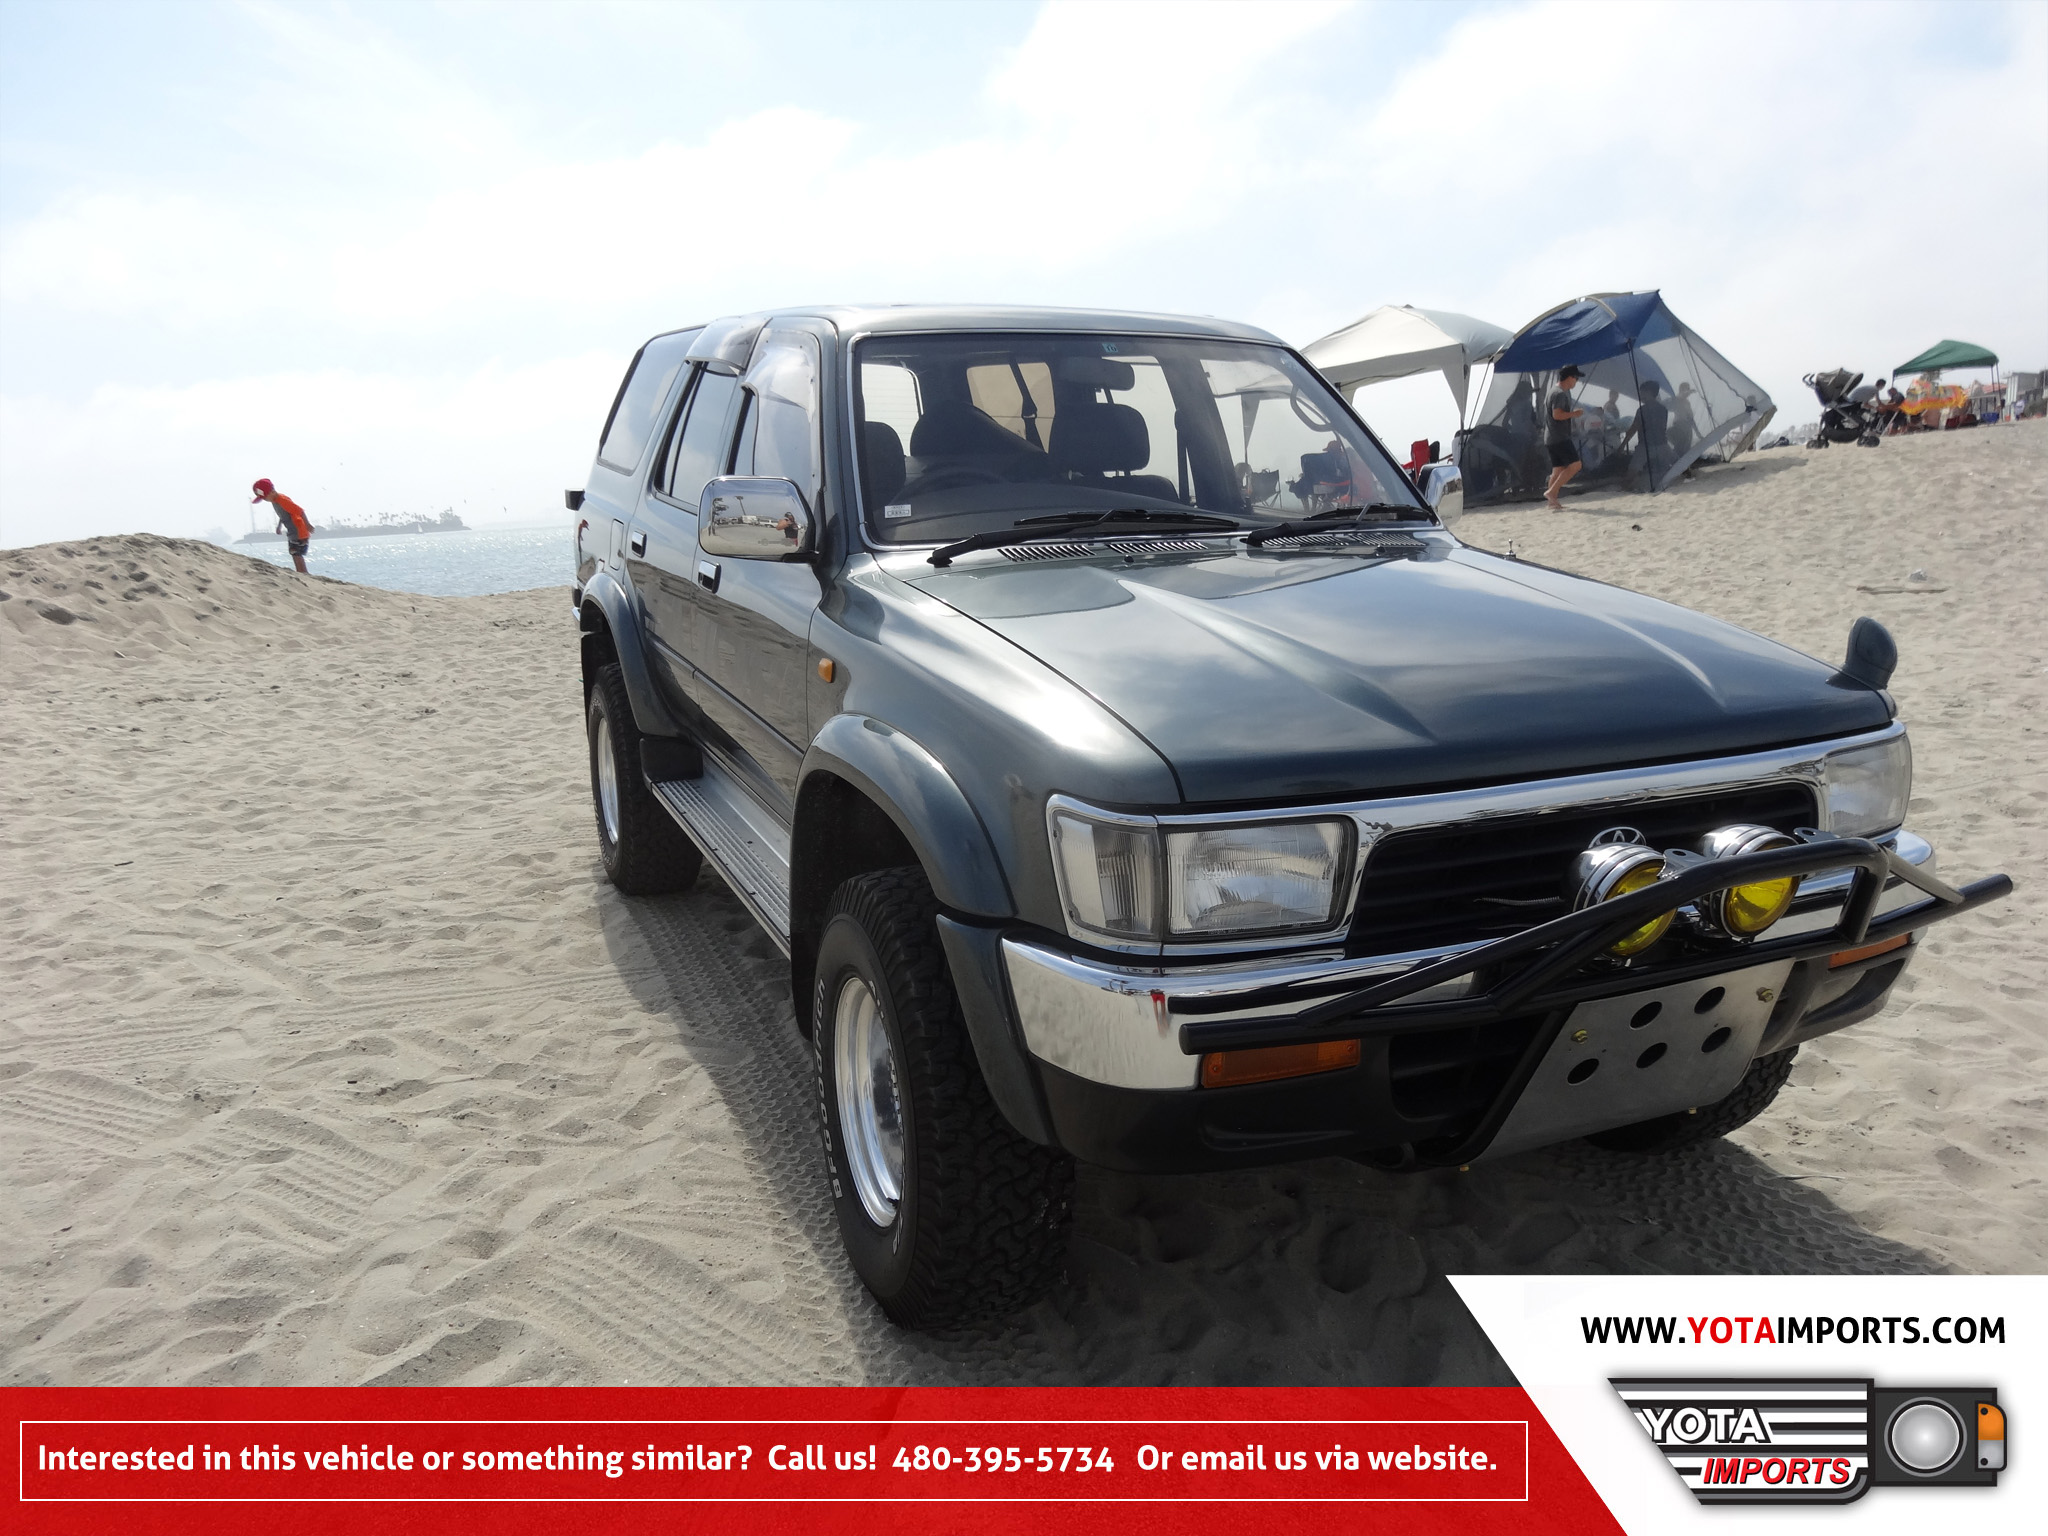 1991 toyota hilux surf ssr yota imports. Black Bedroom Furniture Sets. Home Design Ideas